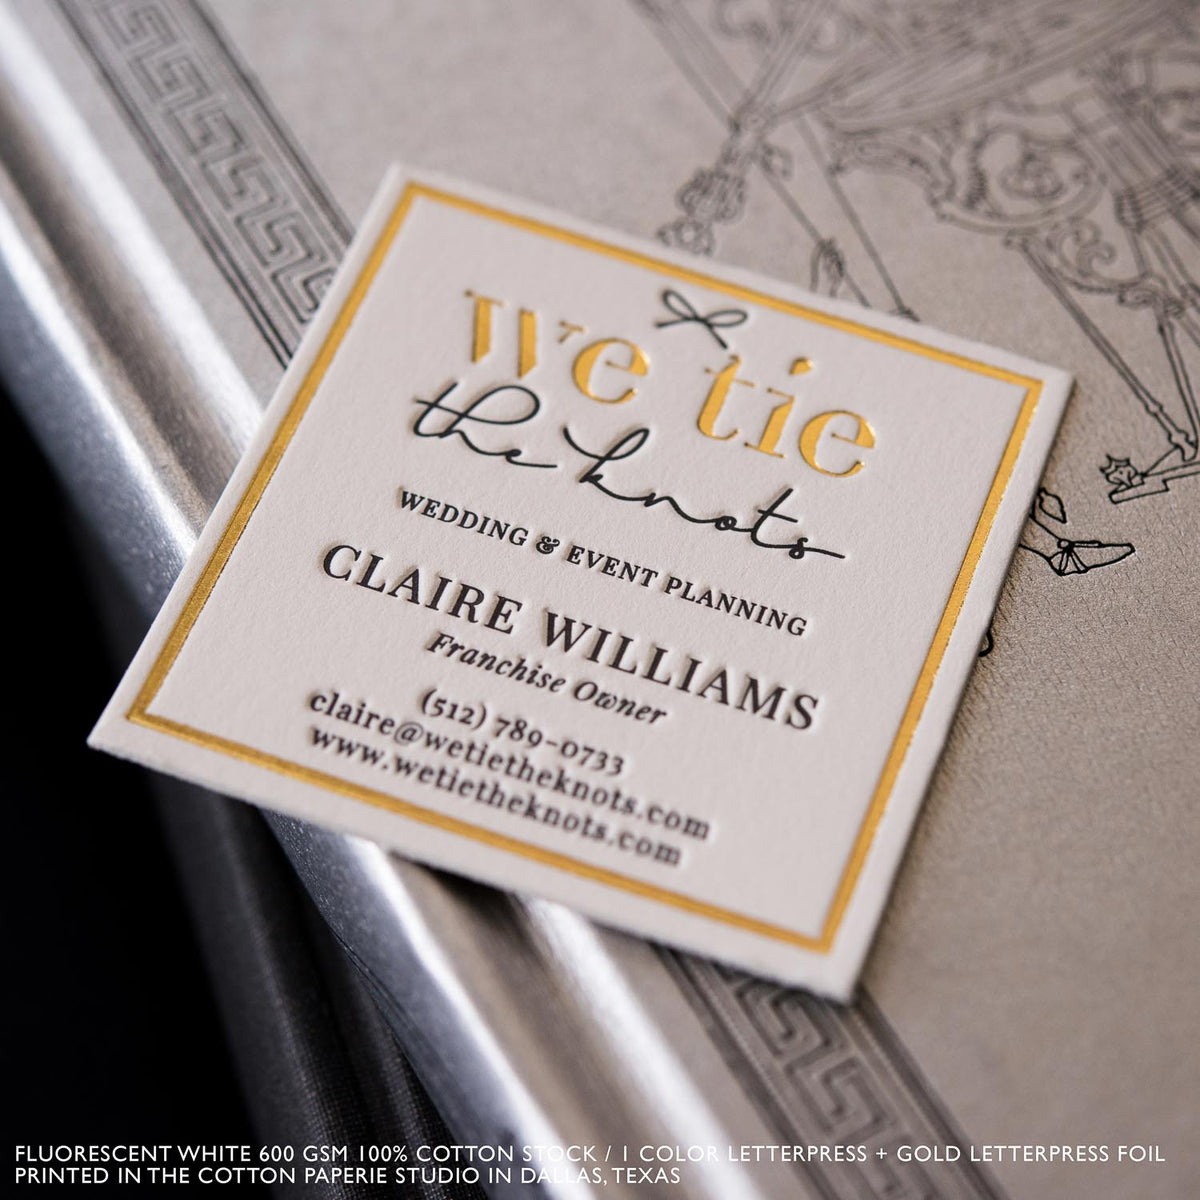 Cotton paperie eco friendly letterpress luxury printing shop letterpress cards colourmoves